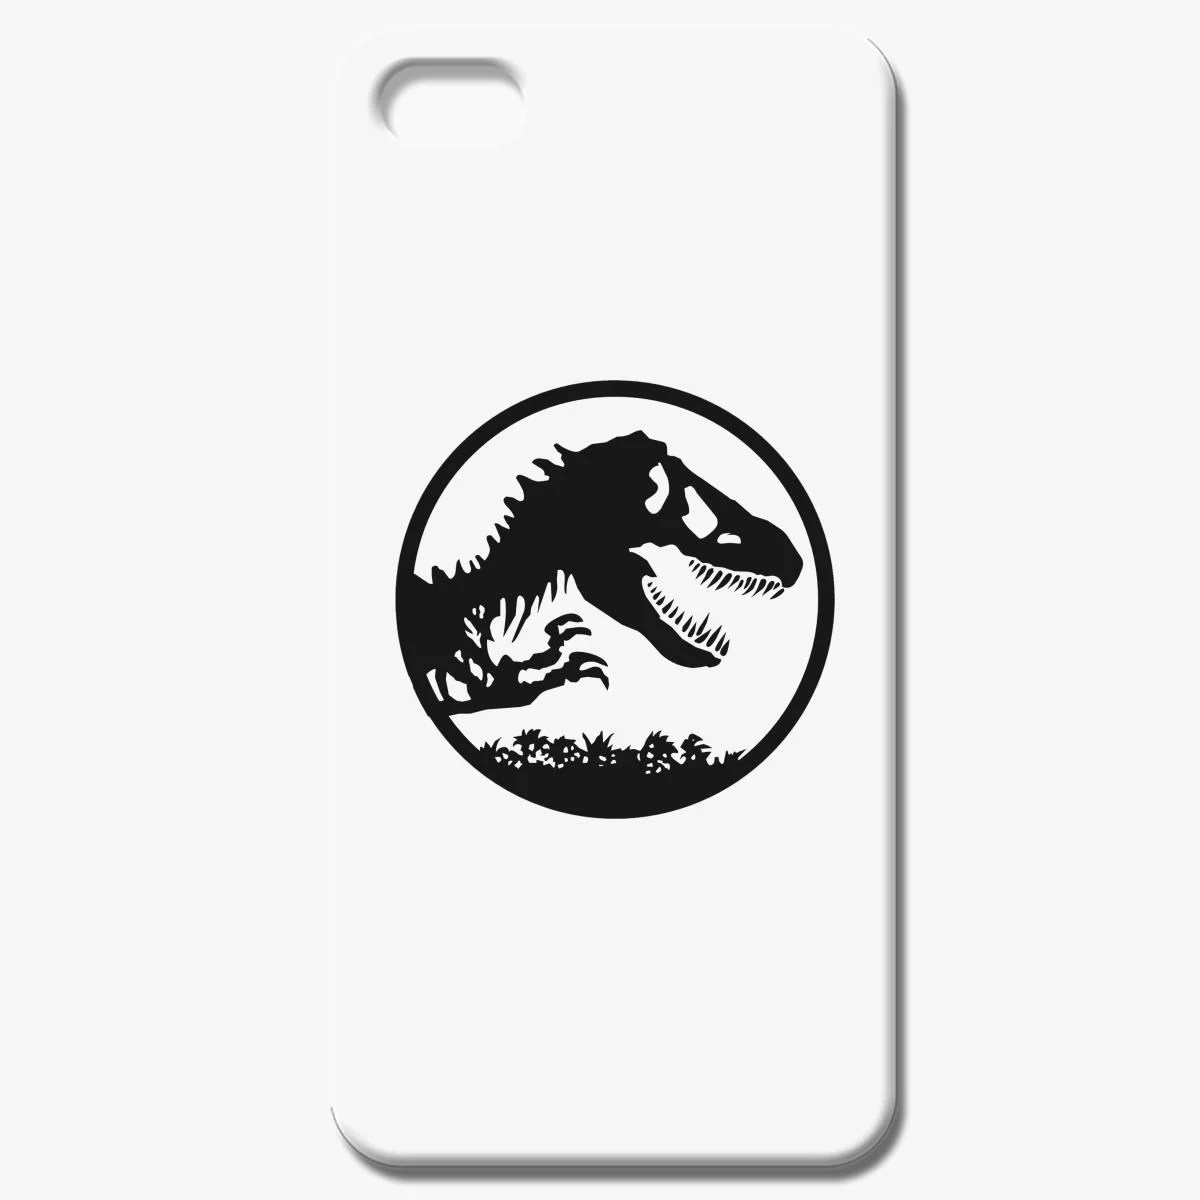 Jurassic Park Logo Iphone 7 Case